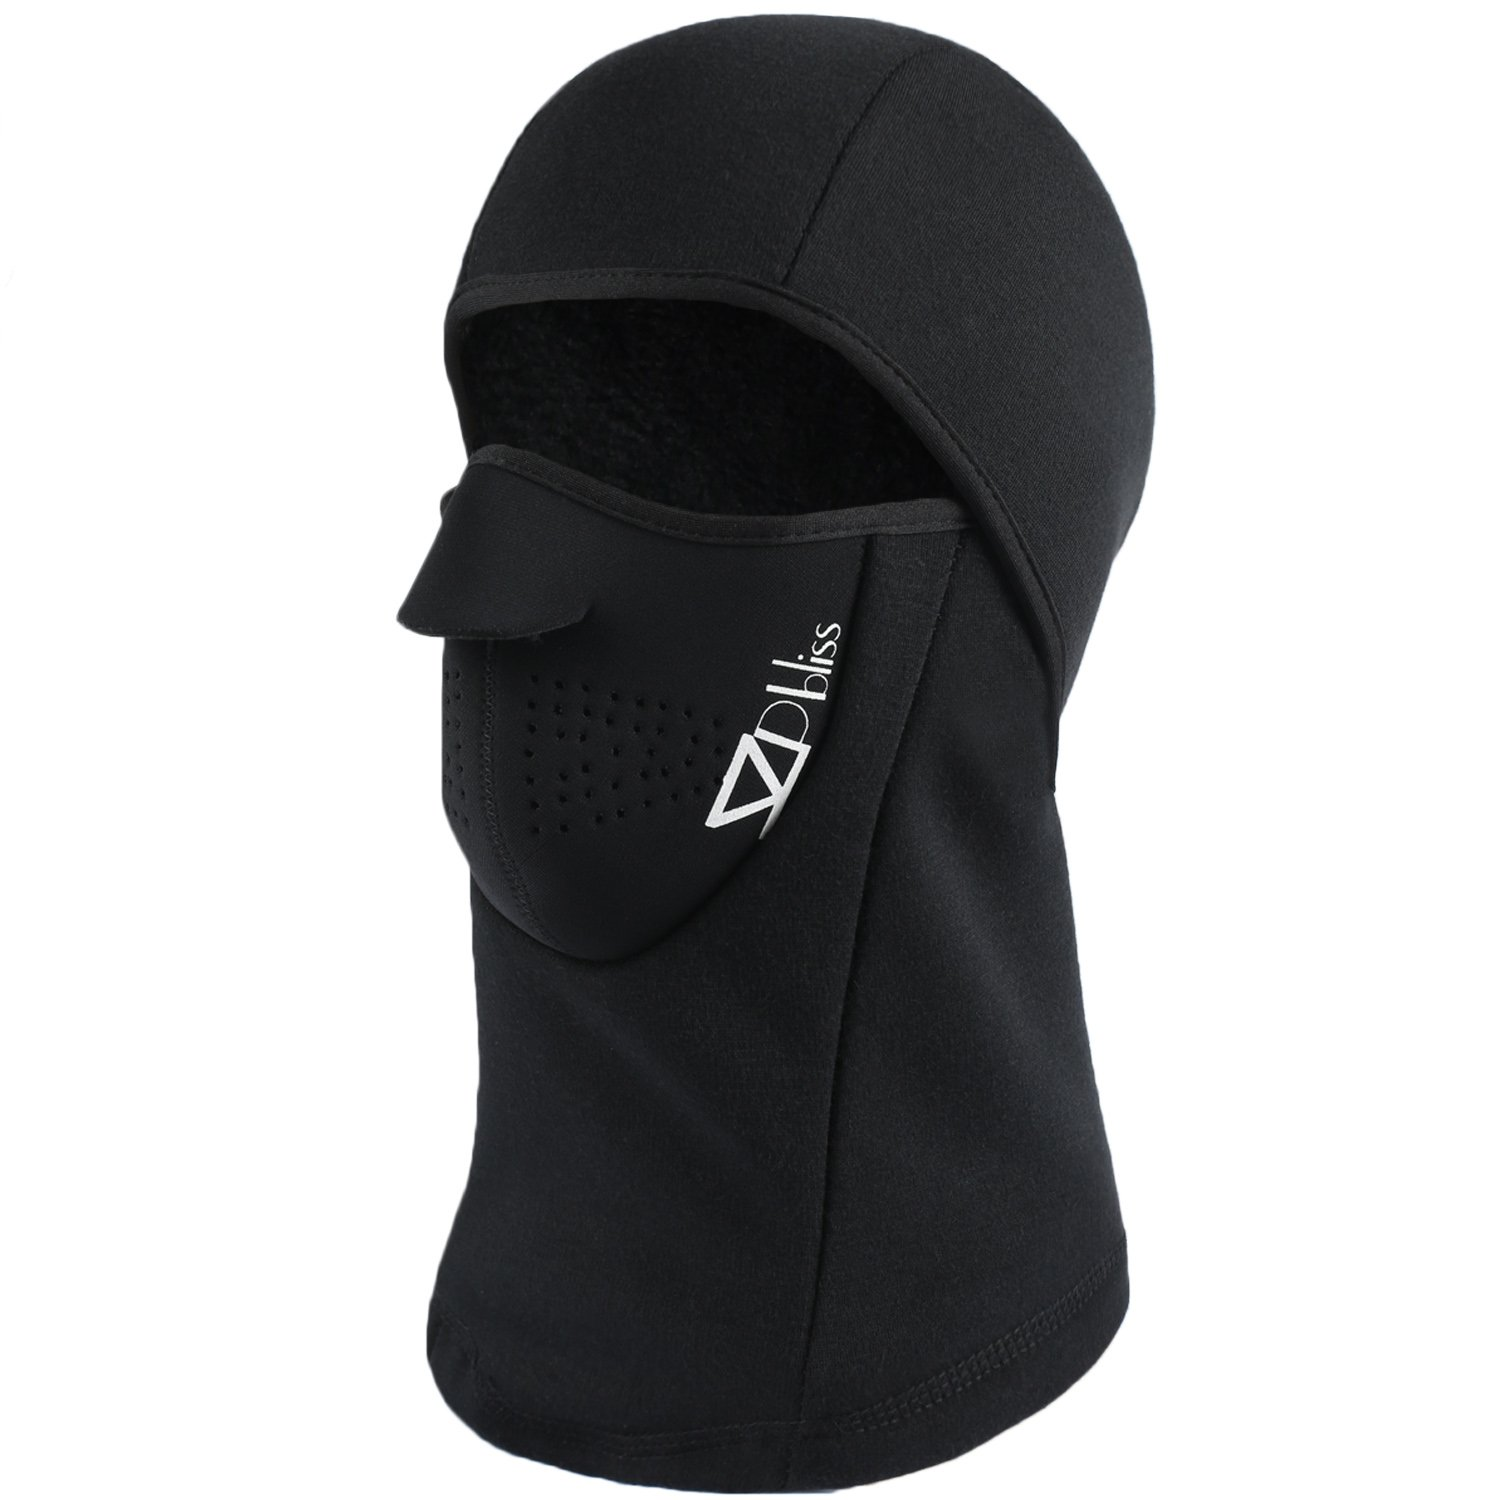 Balaclava Winter Face Cover, Outdoor Stretch Slouchy Windproof Cap- Best Fleece Face Mask Scarf Skull Warmer wind-protection hat for Skiing, Hiking, Running, Cycling, Jogging, Camping, Motorcycle. ZPbliss Balaclava-a